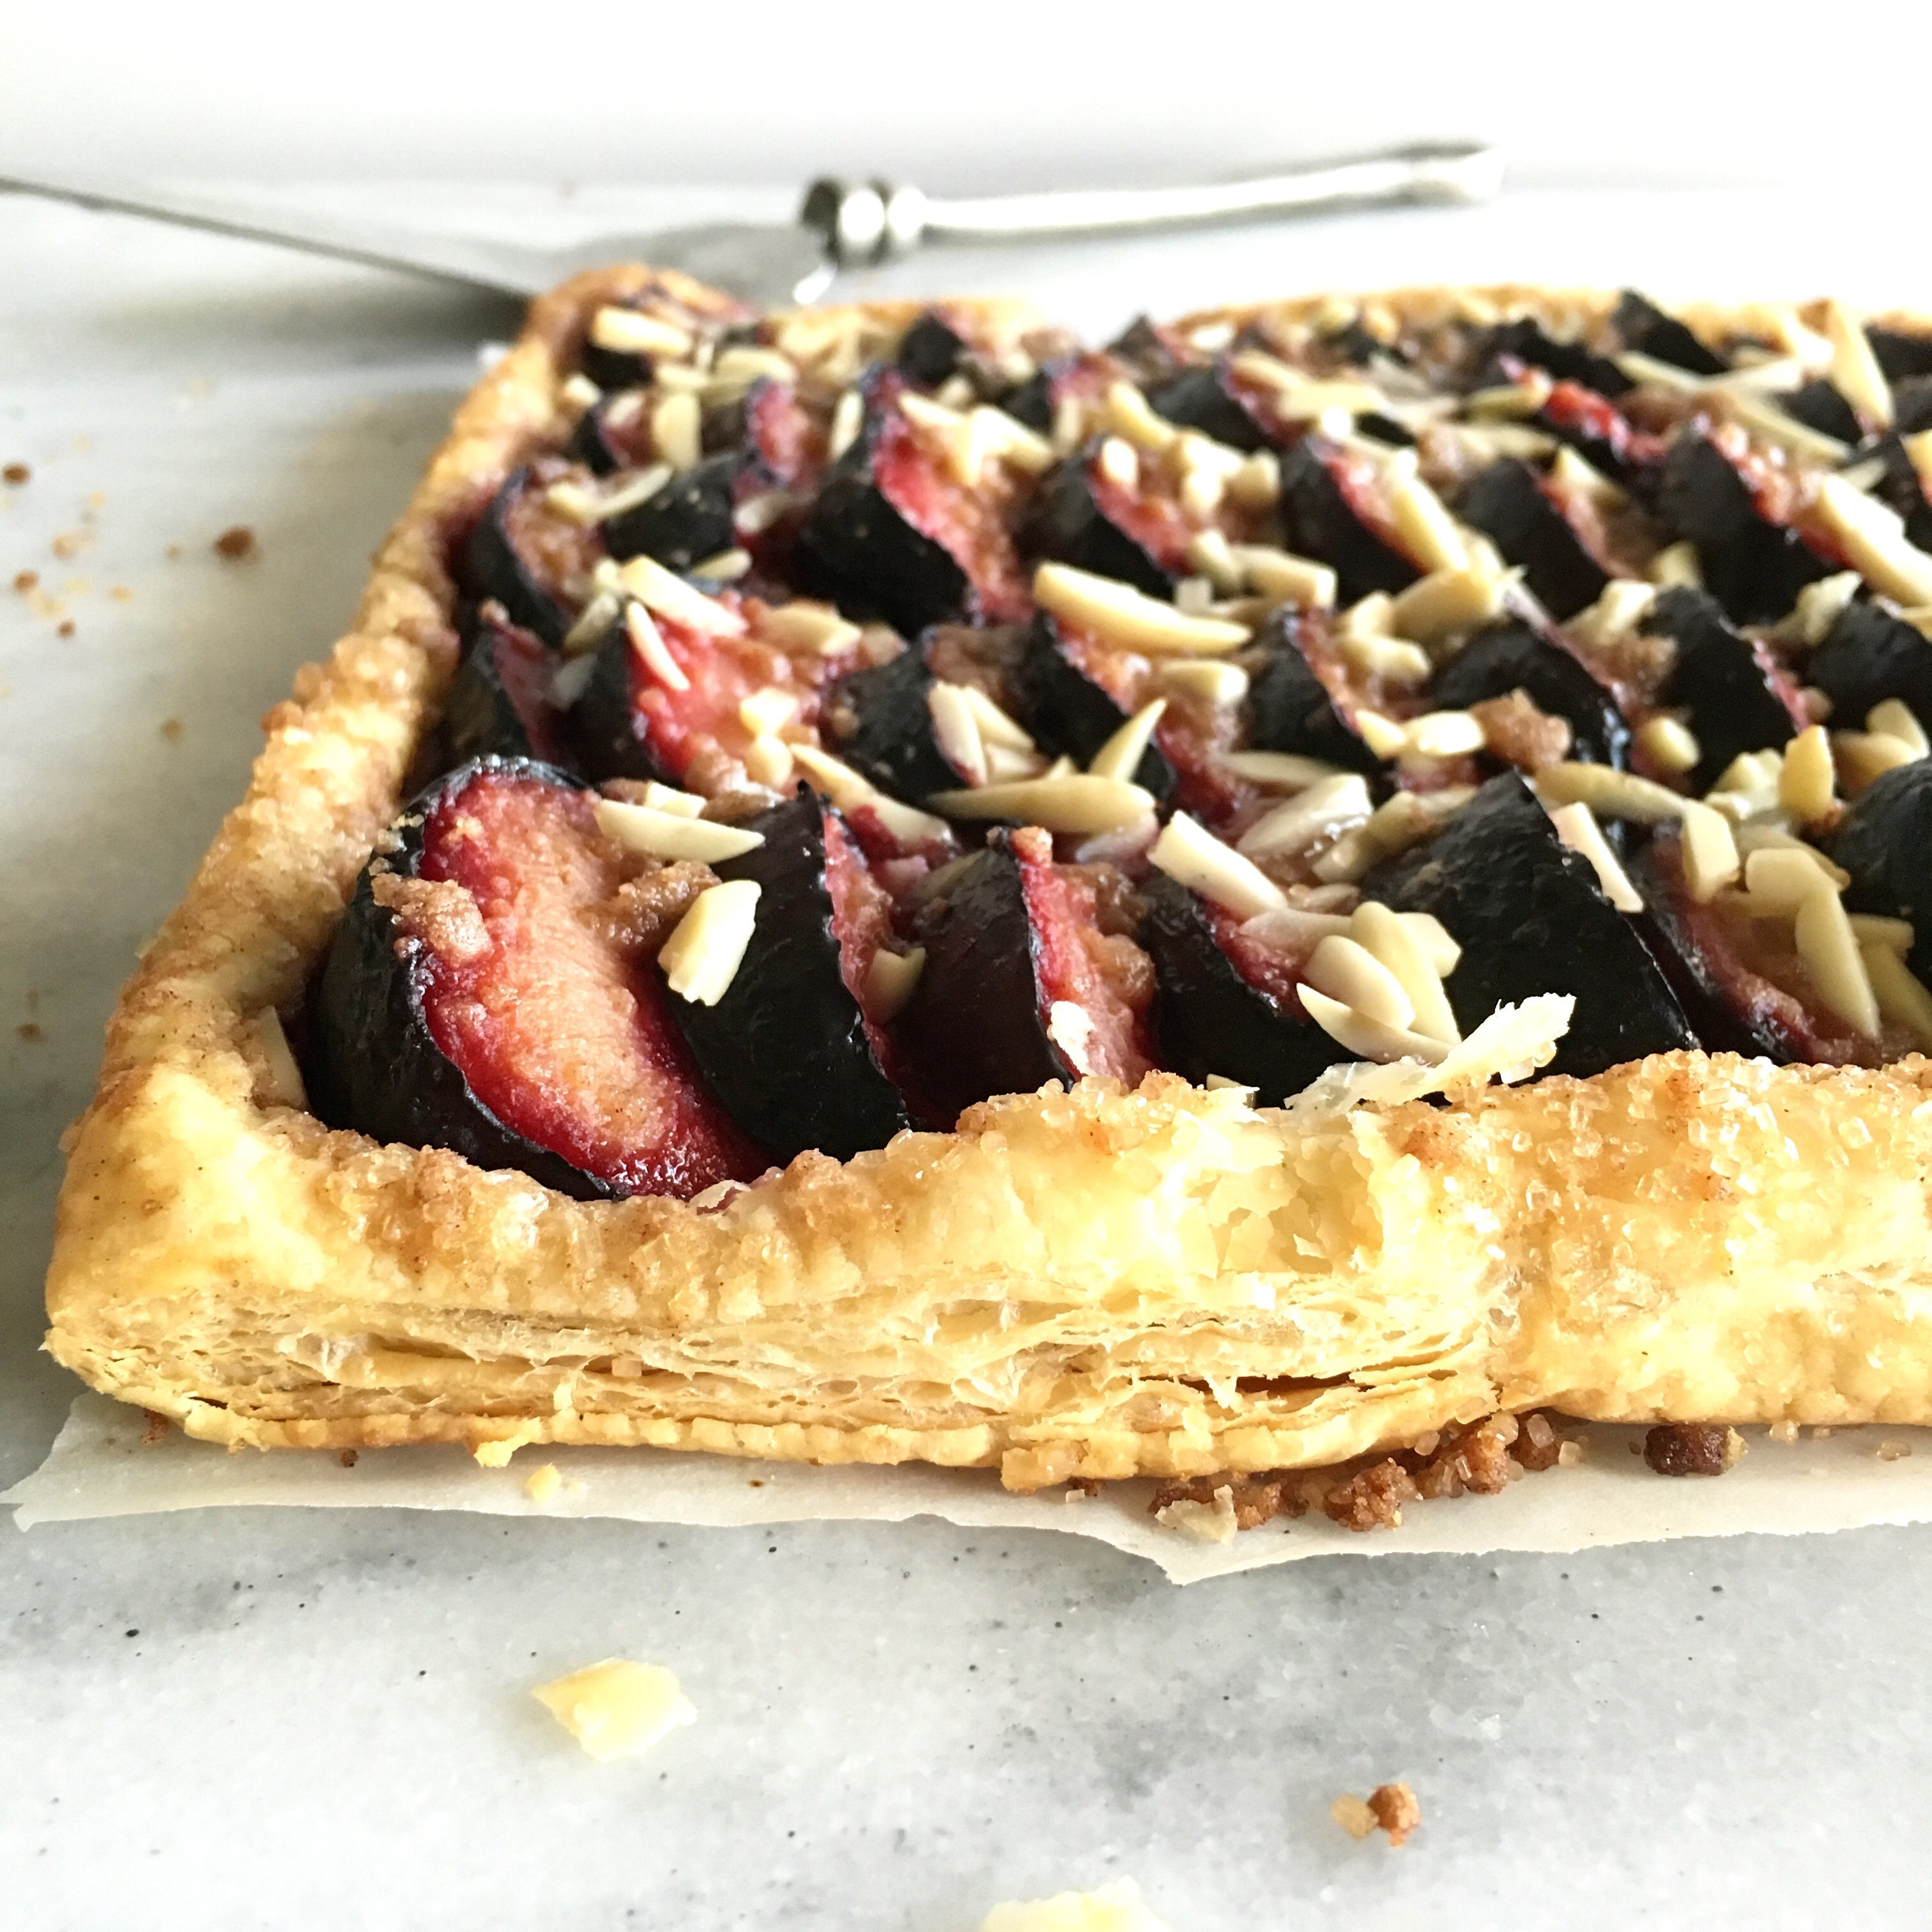 Almond Plum Tart, profile